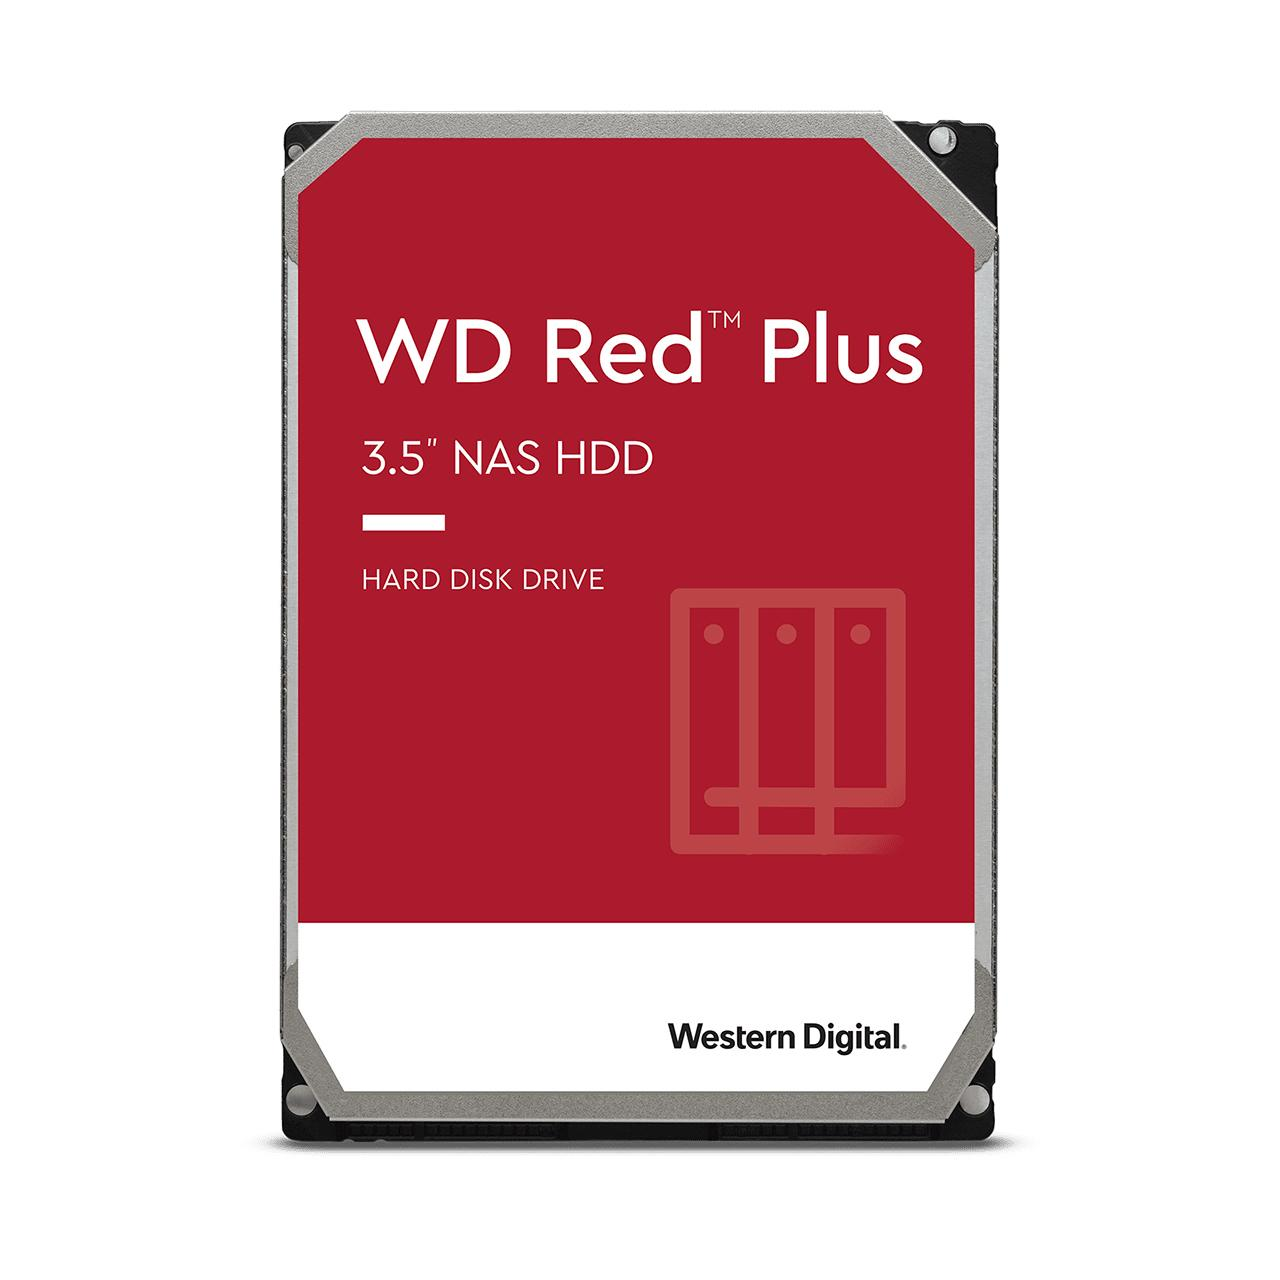 """Хард диск WD Red Plus 6TB NAS 3.5"""" 128MB 7200RPM, WD60EFZX"""